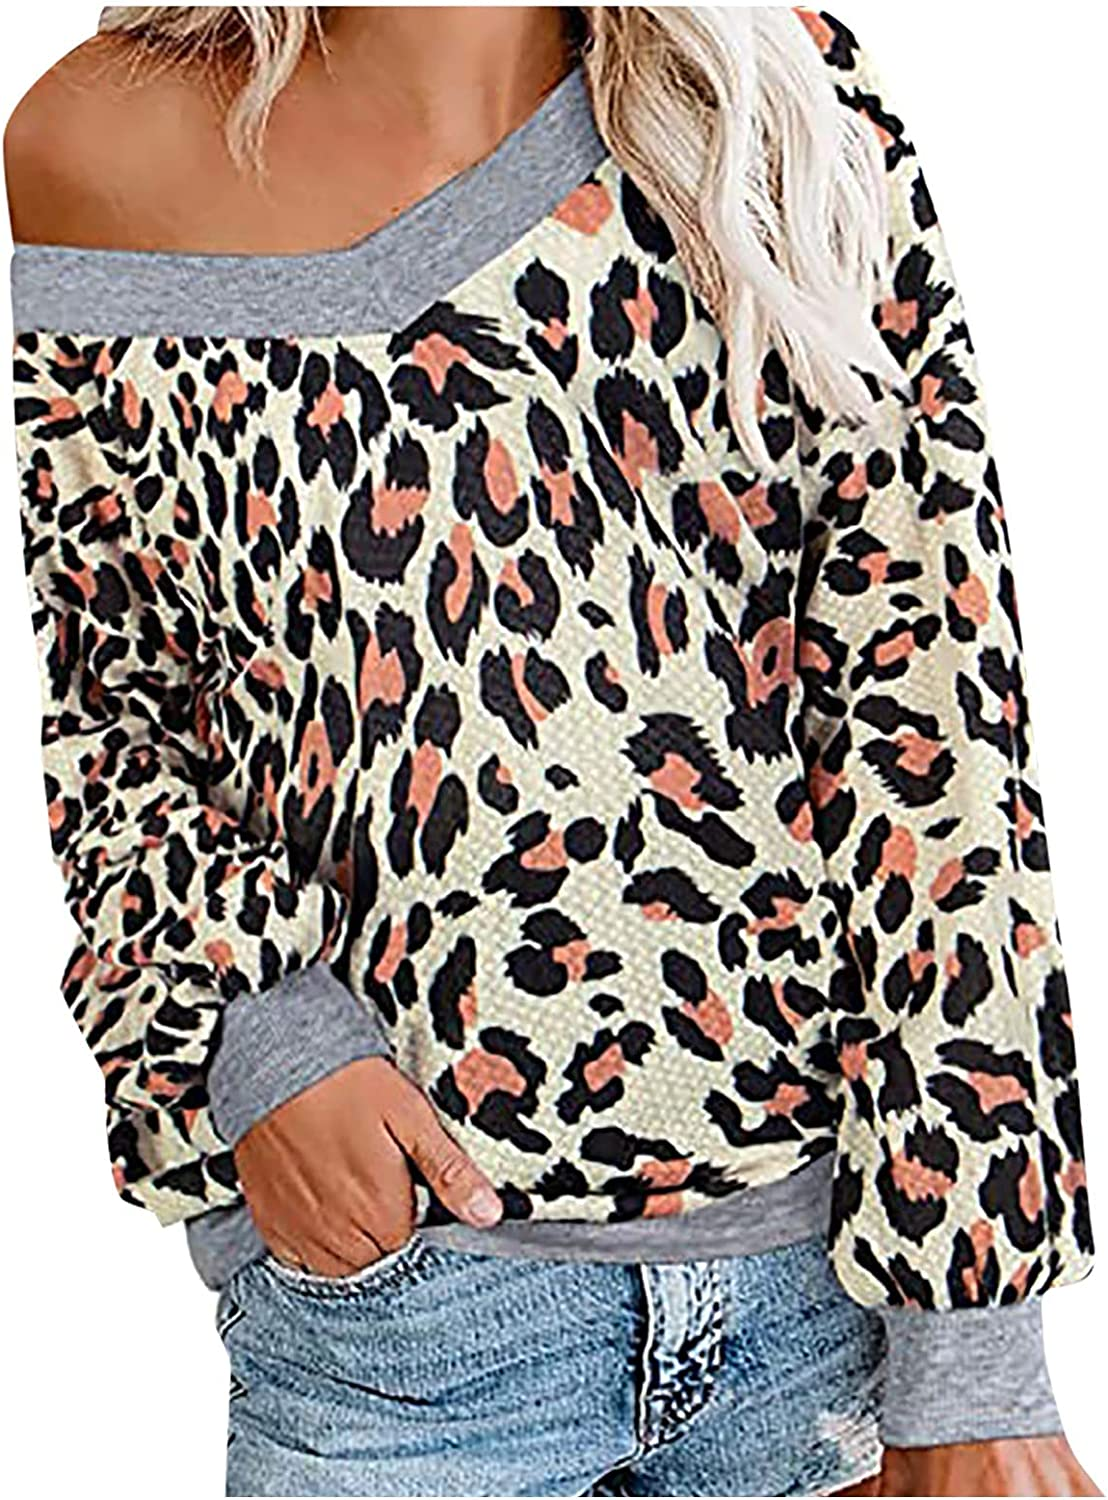 Women's V-neck Off Shoulder Knit Sweater Sexy Simple Bat Sleeve Long Sleeve Pullover